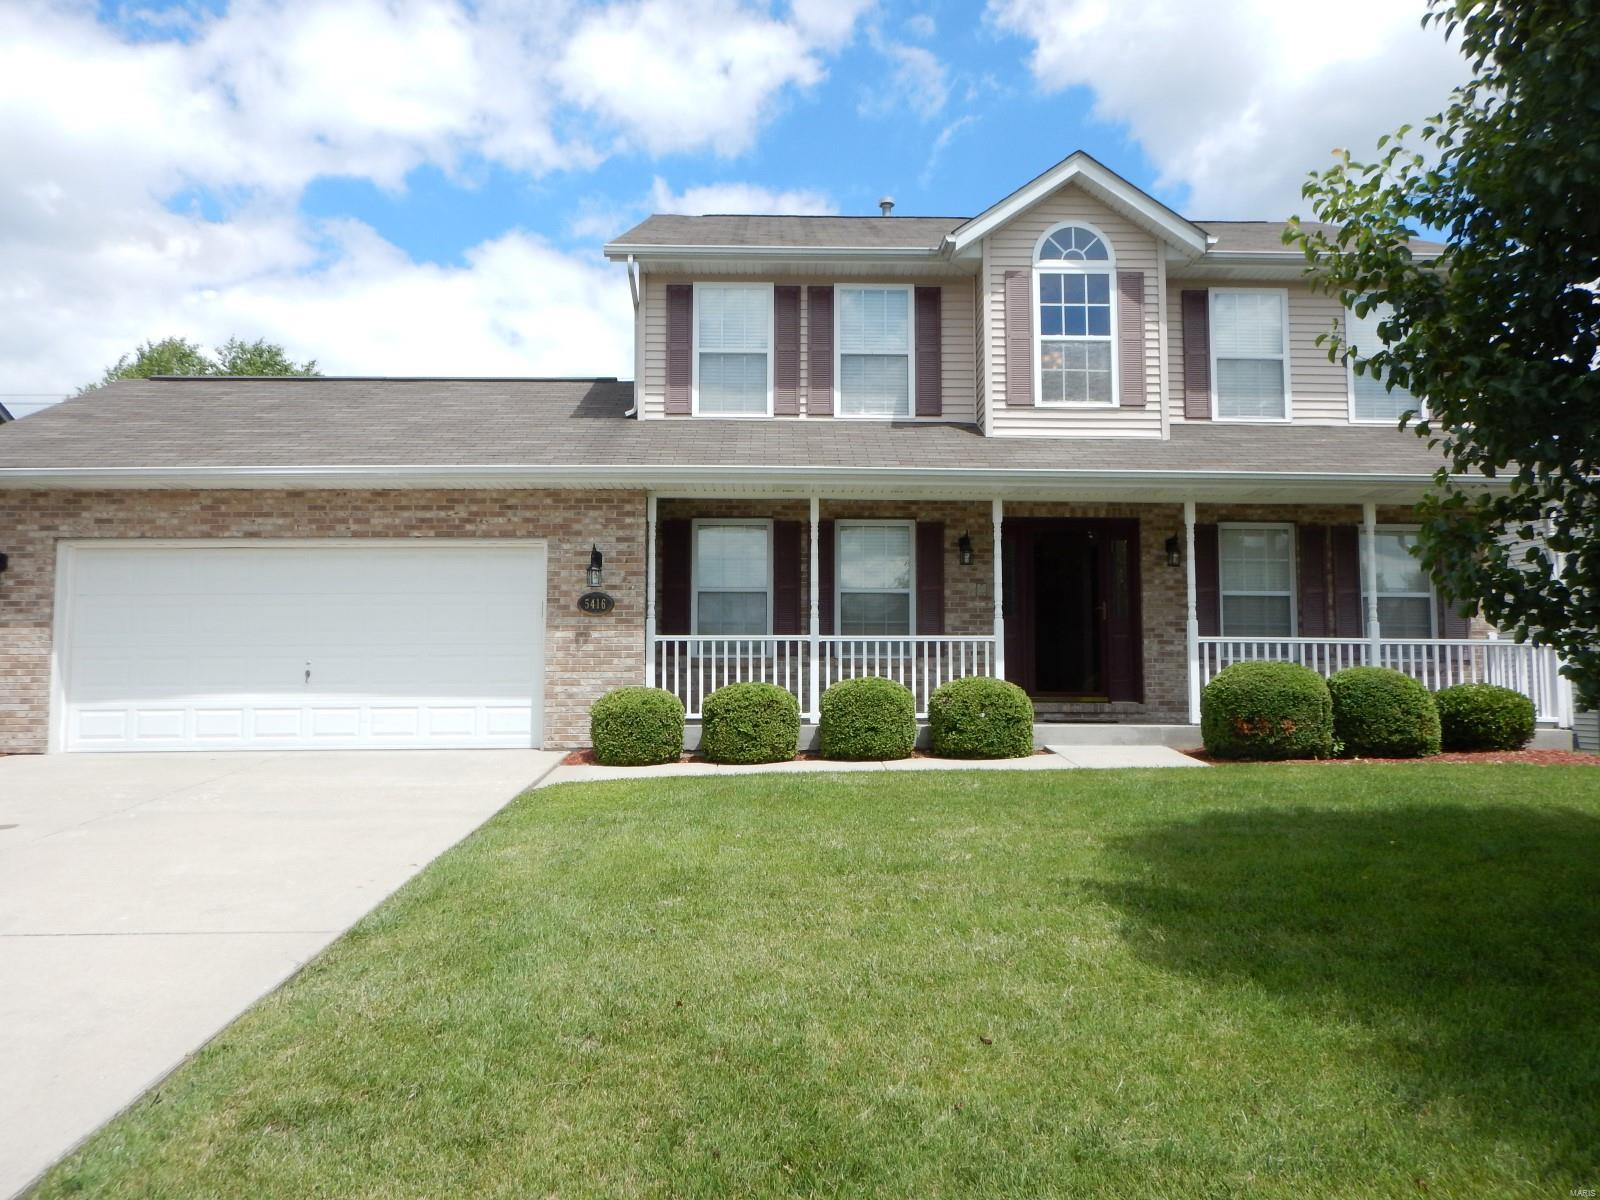 5416 Baylor, Fairview Heights, IL - USA (photo 1)